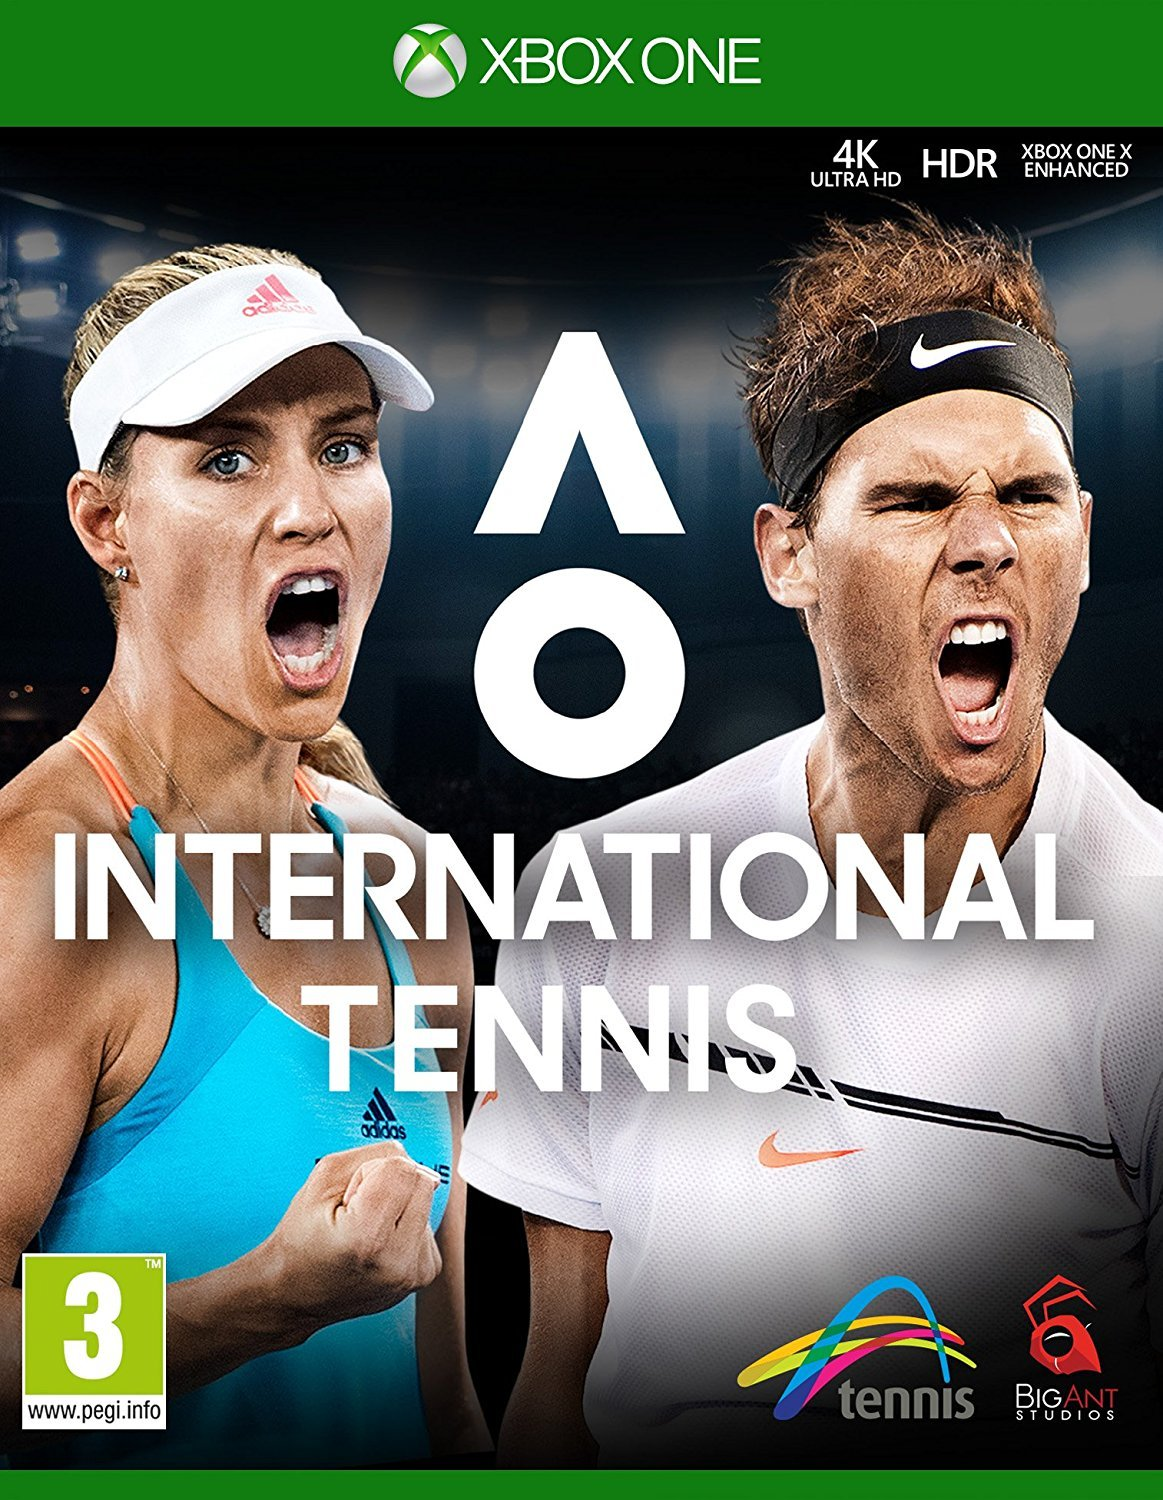 AO International Tennis (Xbox One) by Big Ant Studios (Image #1)